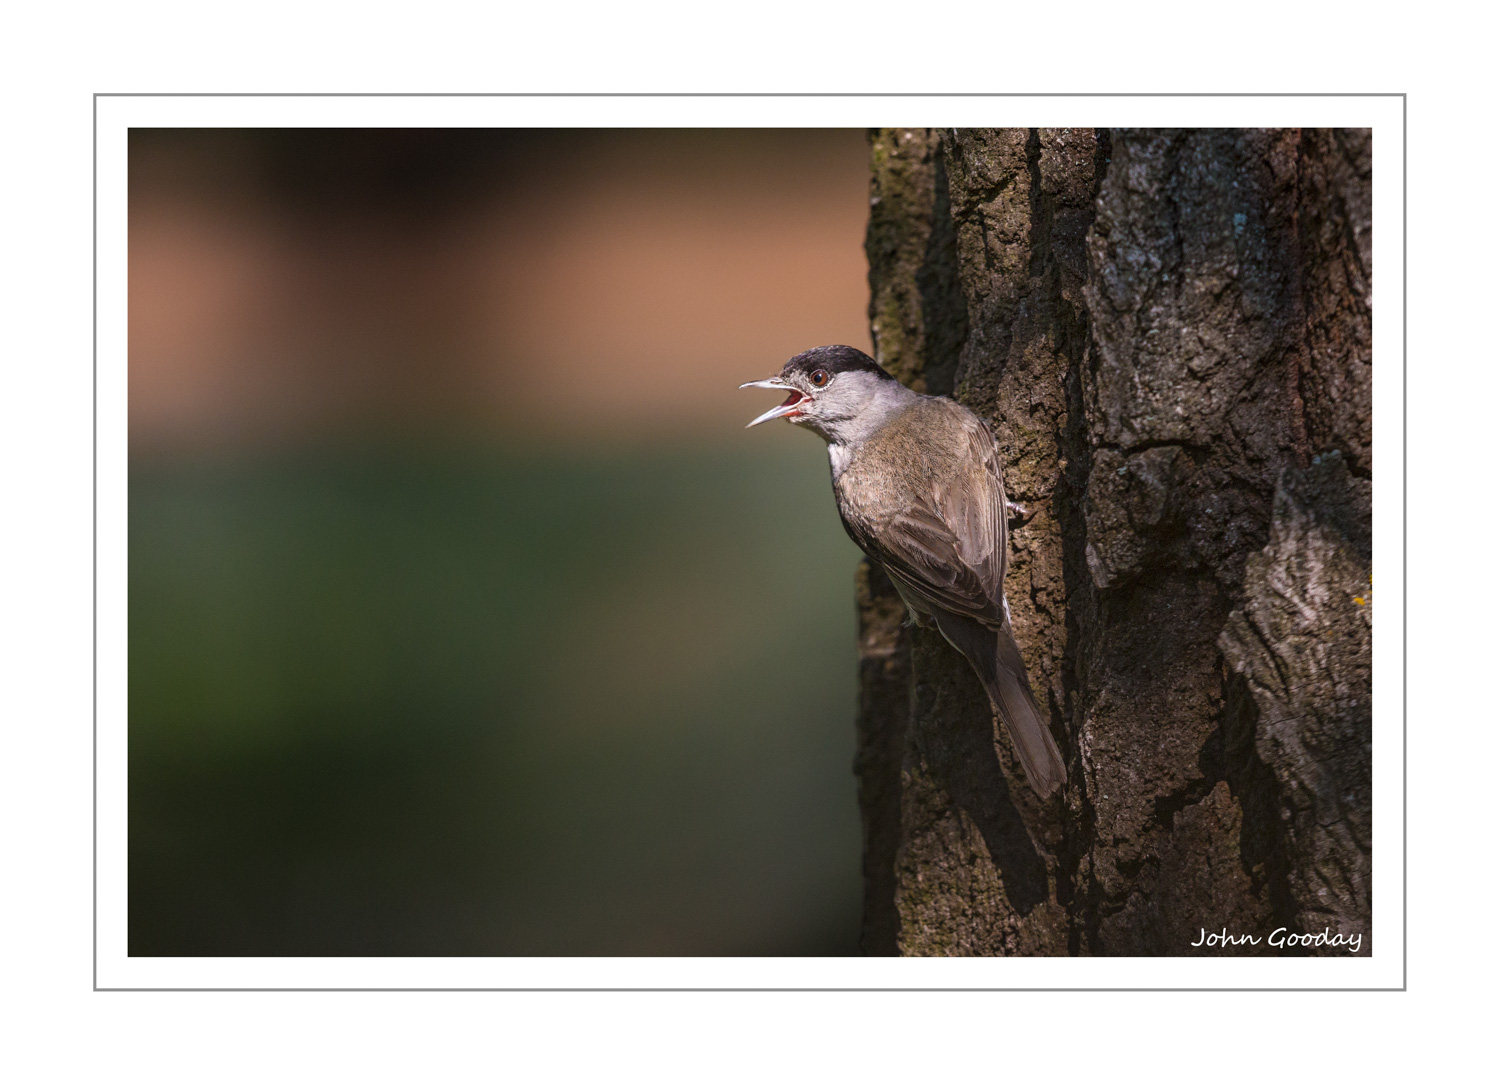 (Image: Blackcap calling from a tree near a pool. Canon EOS 5D Mark III, EF500mm f/4L IS II, 1/1000 sec @ f/4.5, ISO 640, tripod, hide)